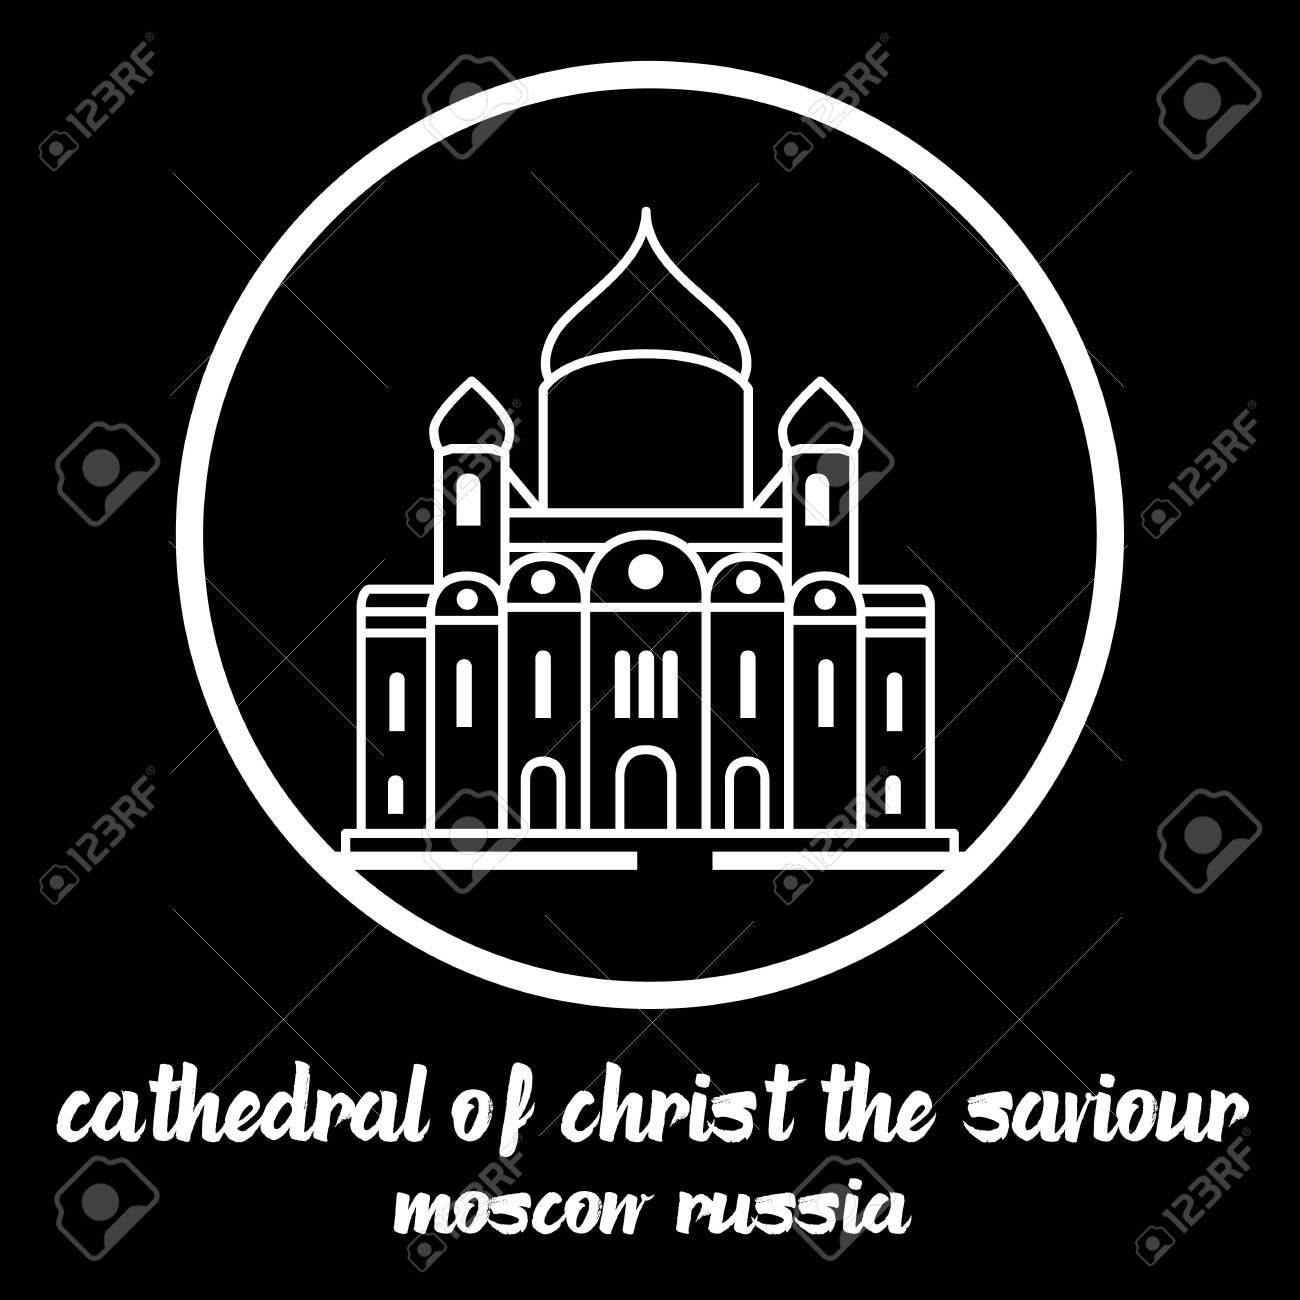 Circle Icon Cathedral of Christ the Saviour. vector illustration - 133312421